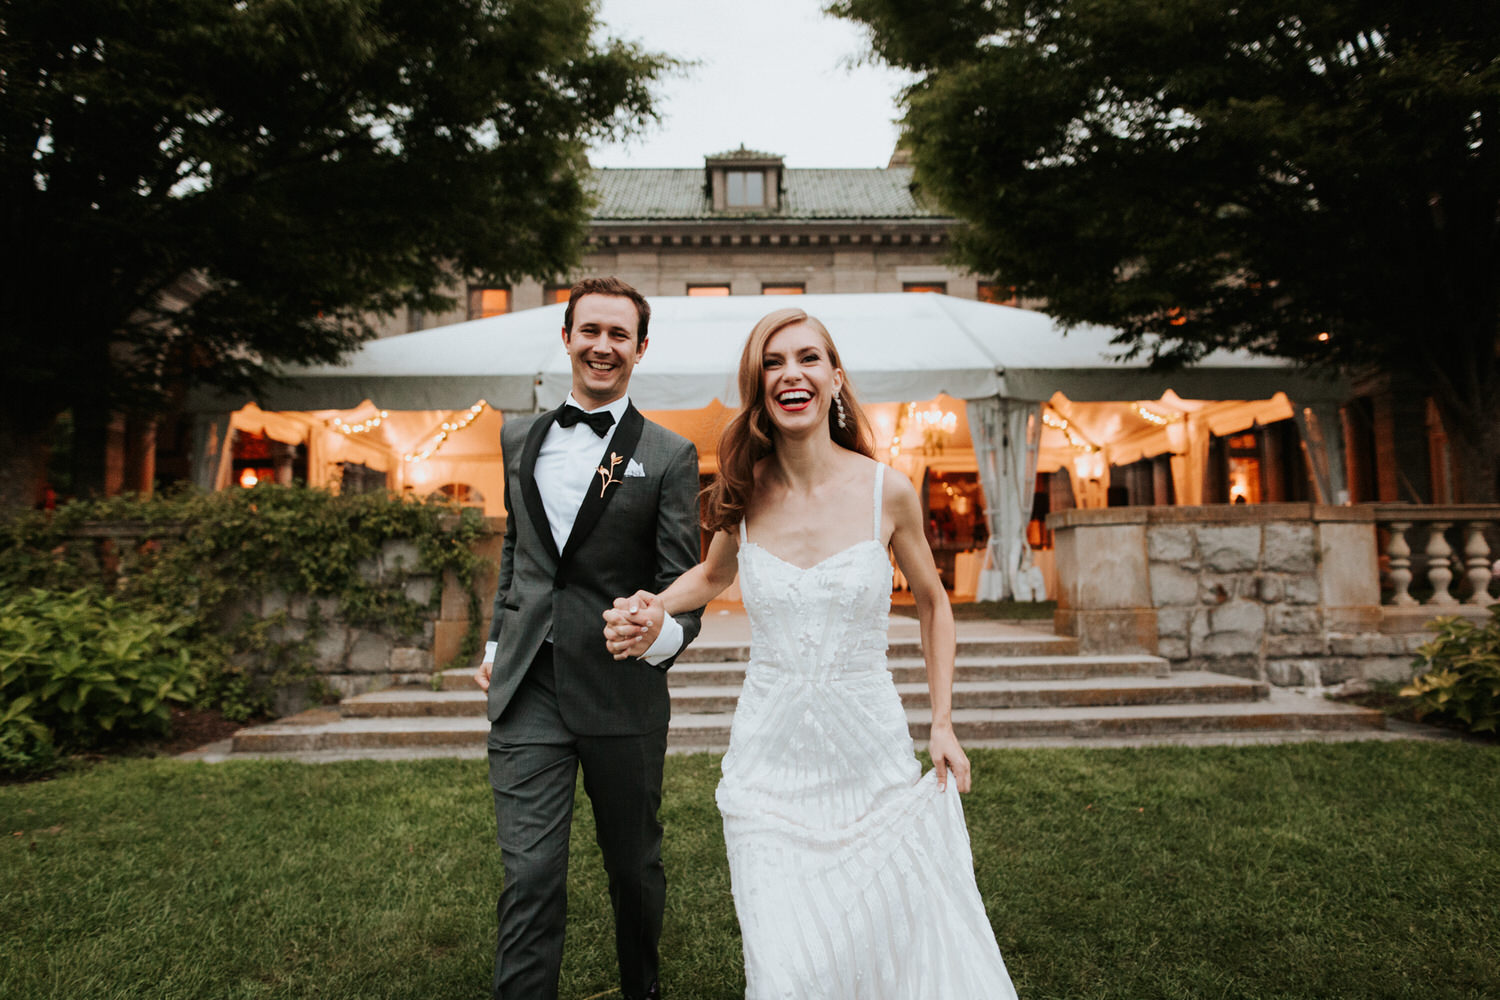 Bride and groom at Eolia Mansion Wedding